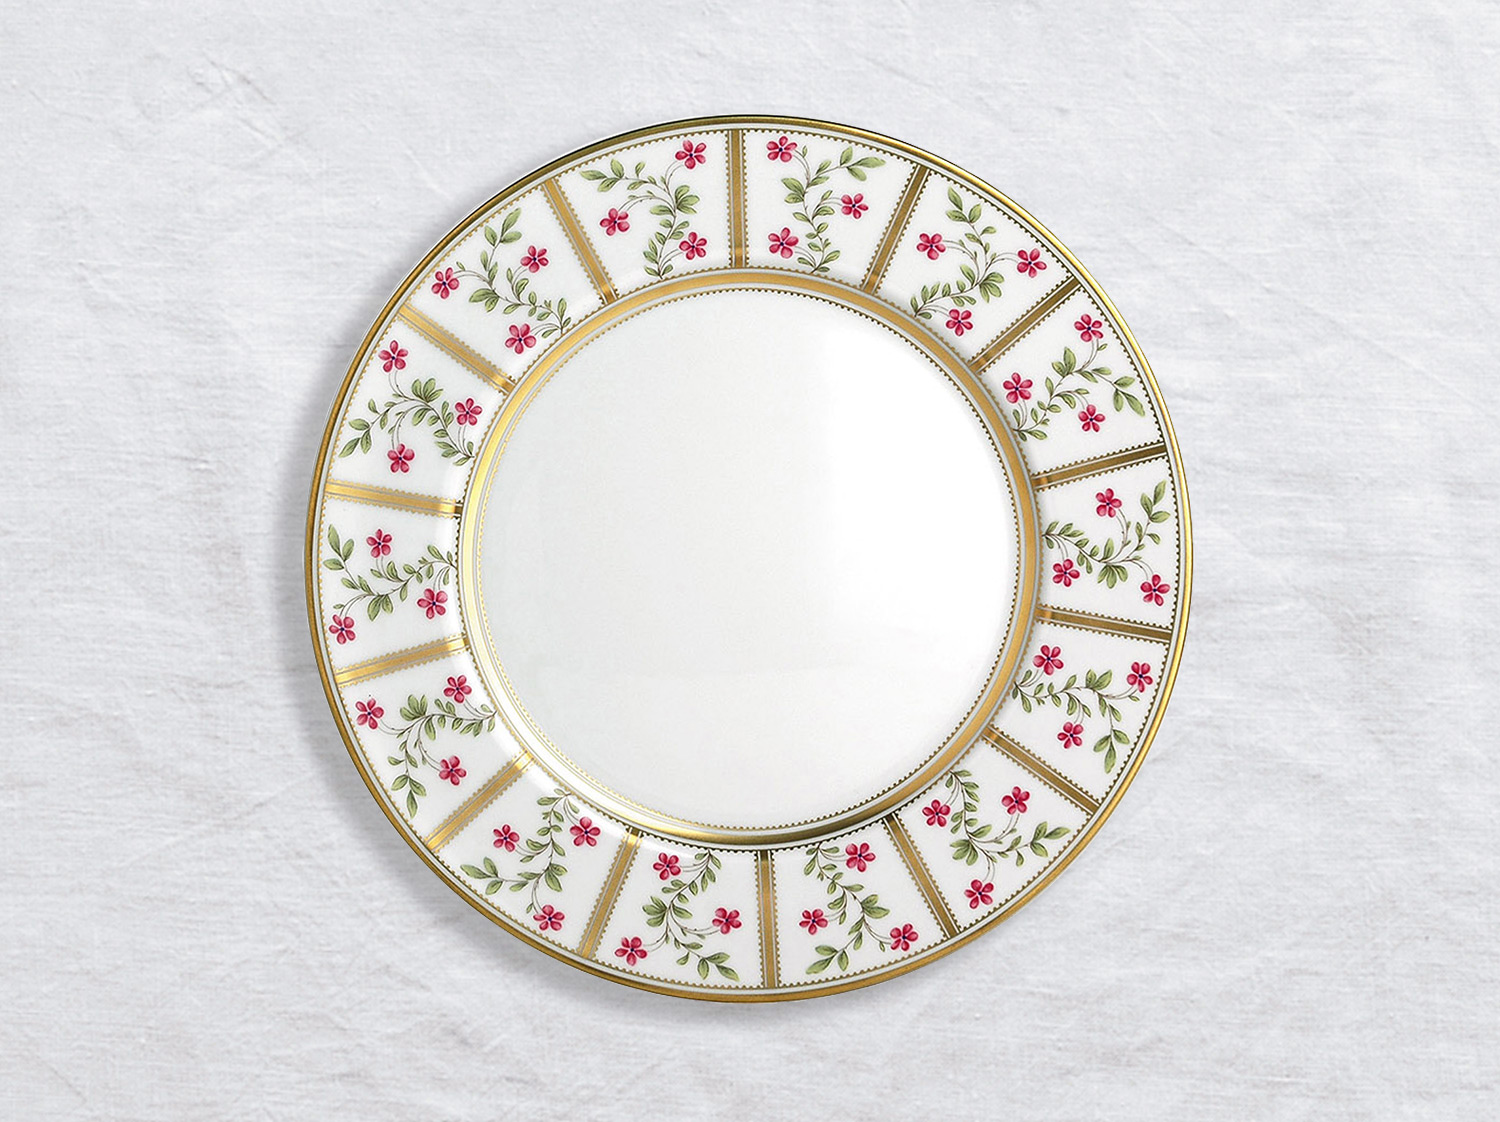 Assiette à dîner 26 cm en porcelaine de la collection Roseraie Bernardaud